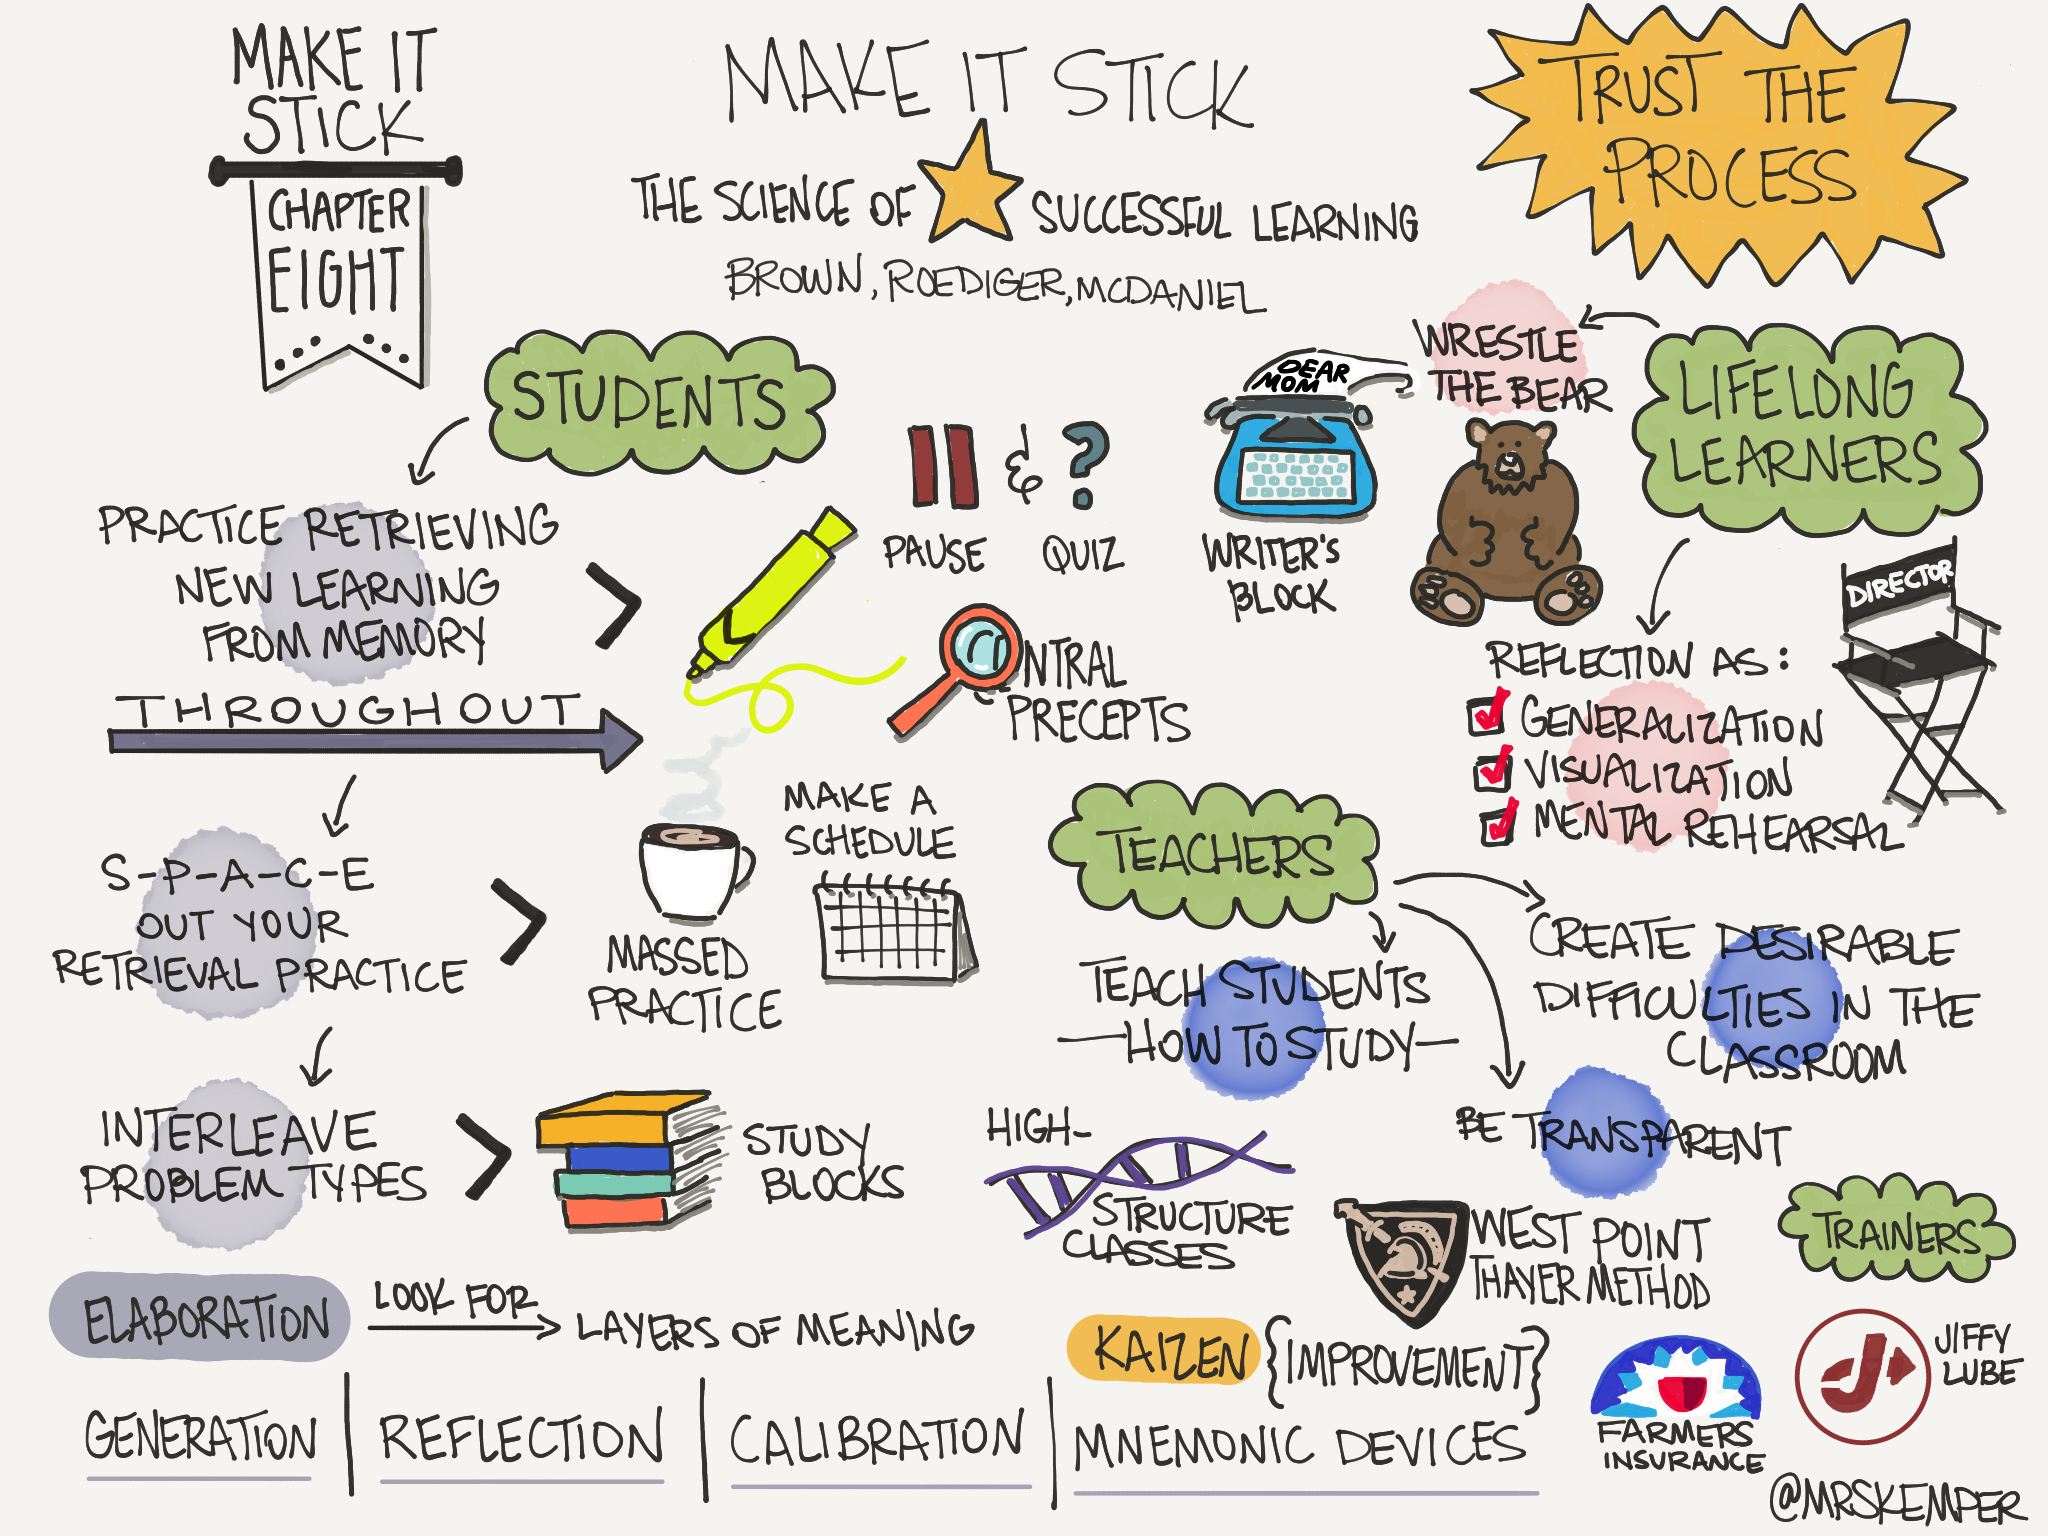 Make it Stick: The Science of Successful Learning – Retrieval Practice